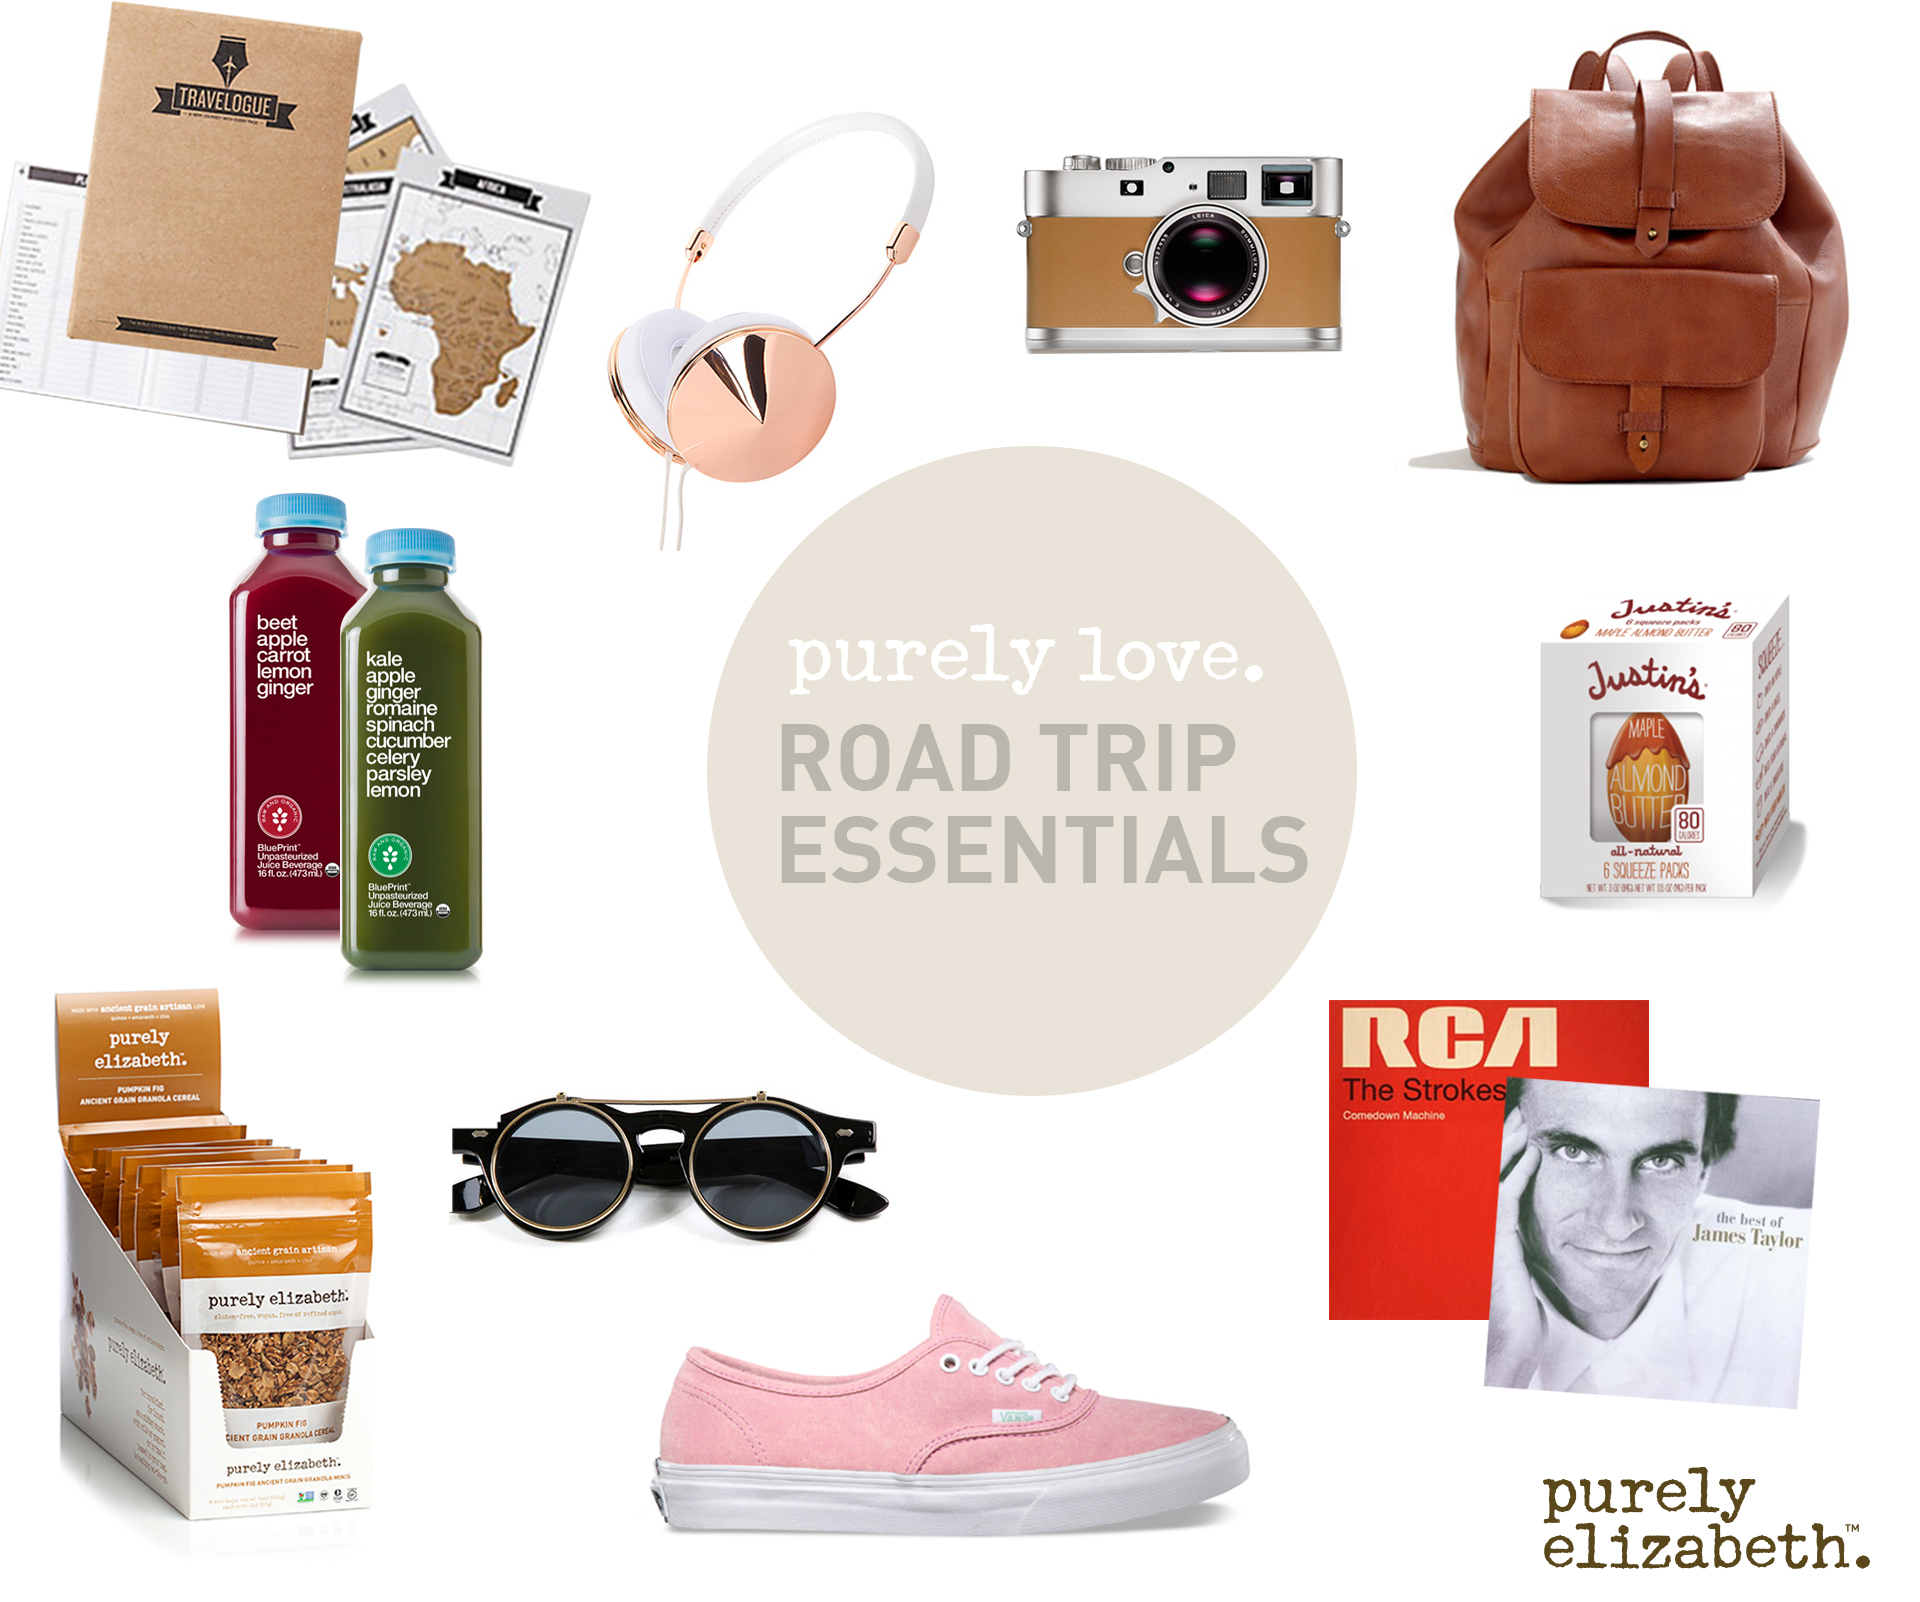 purely love: road trip essentials | eat purely. live purely.